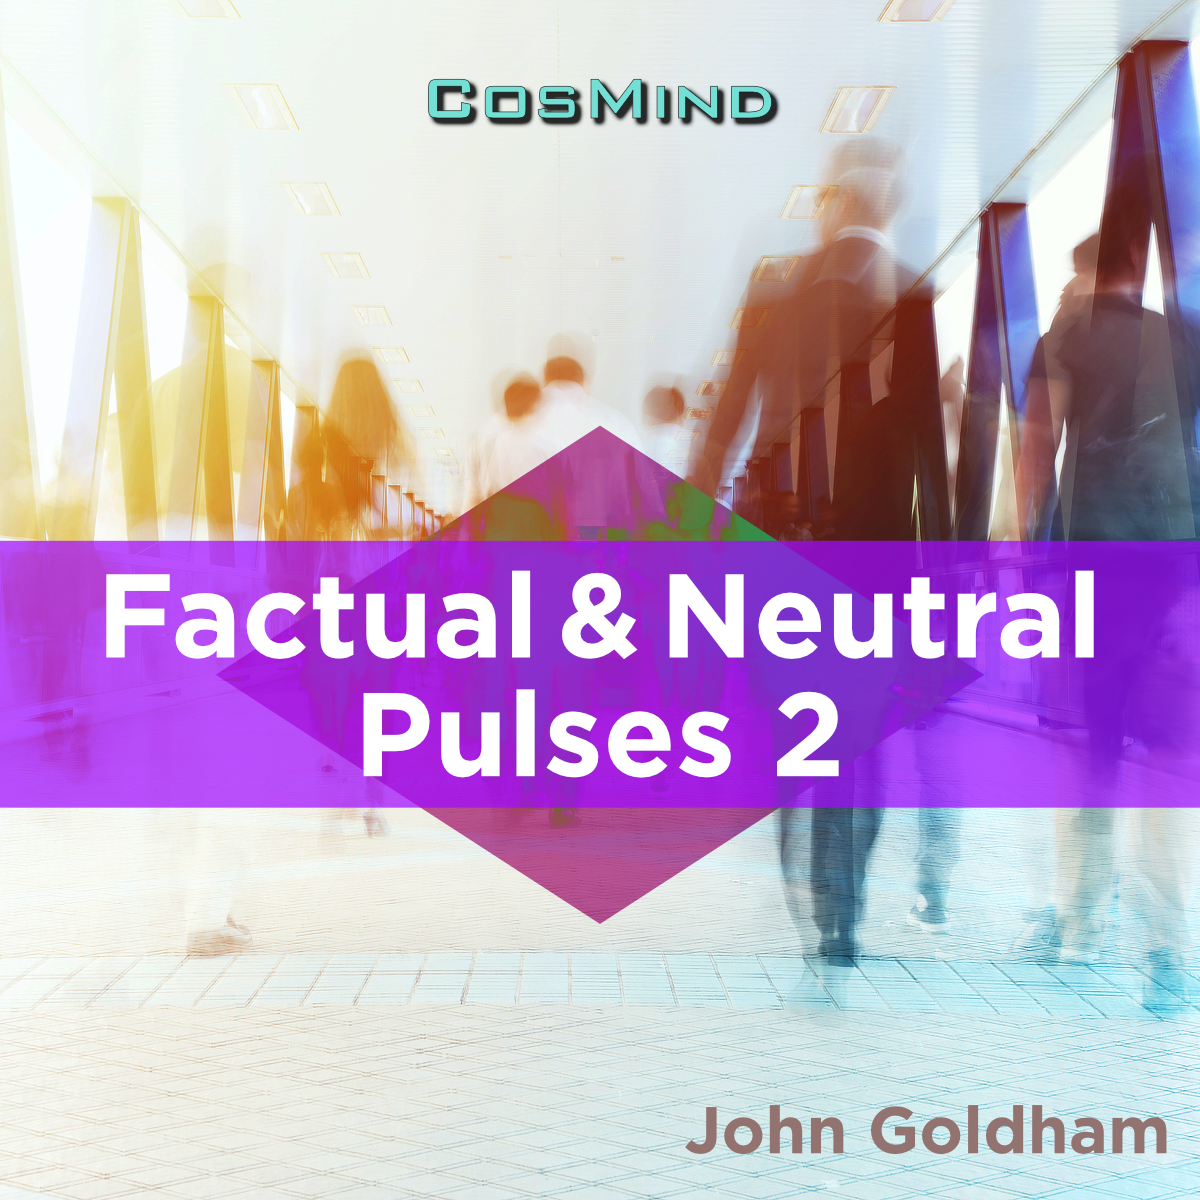 Factual & Neutral Pulses 2